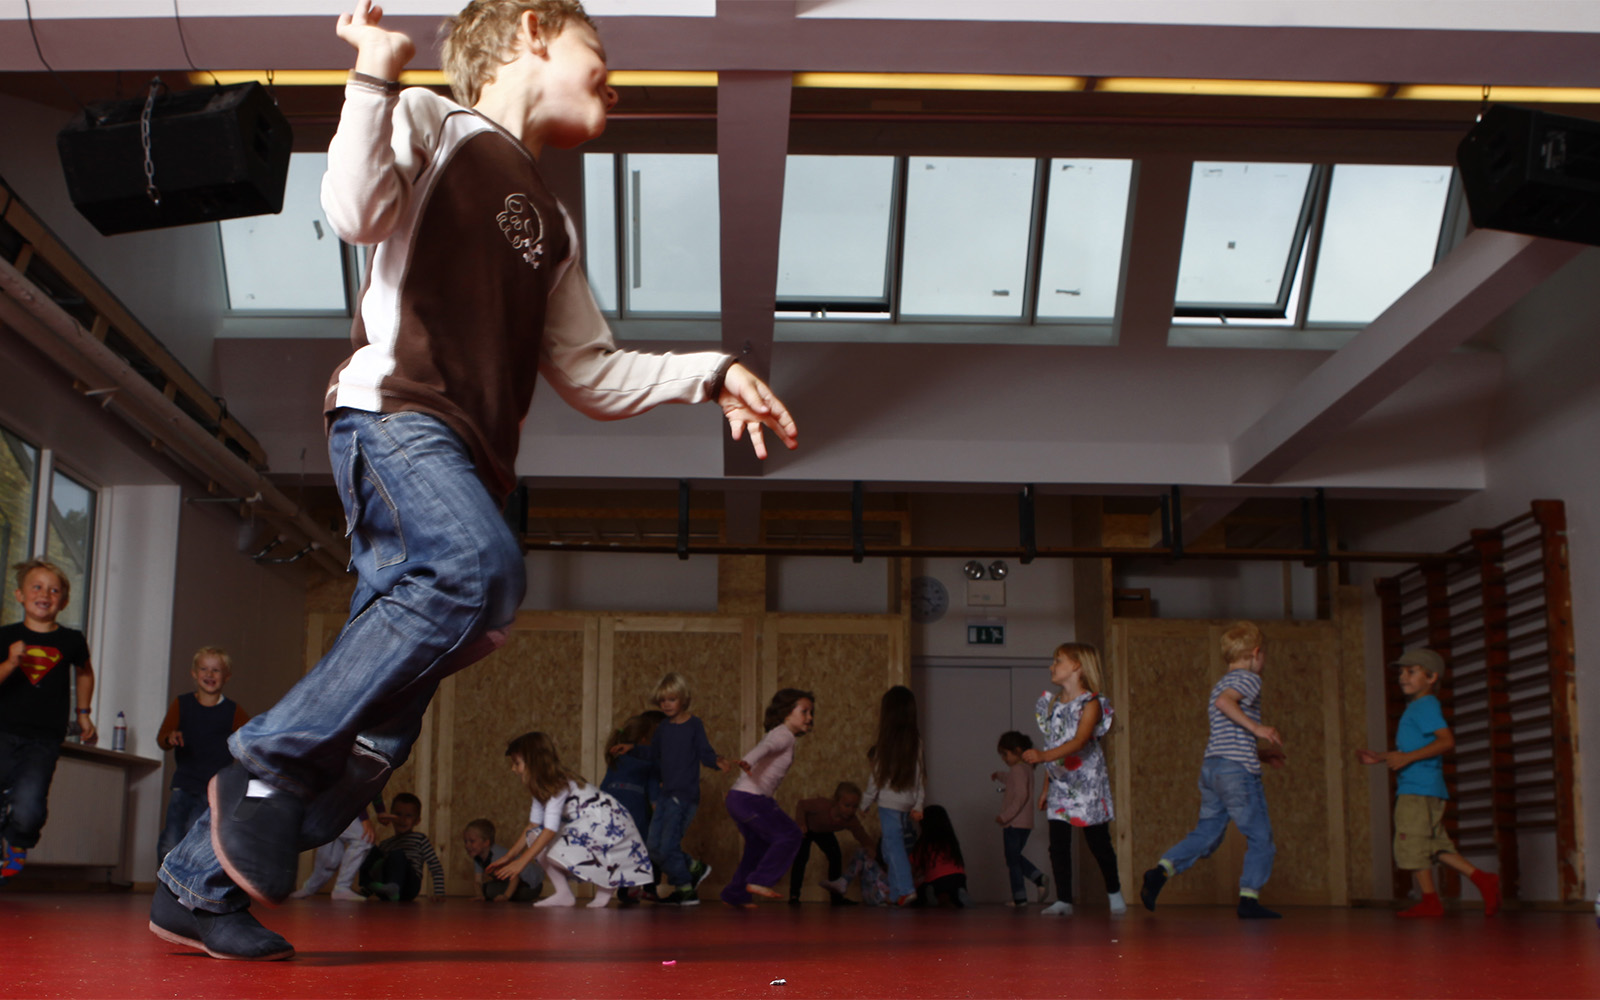 Young children playing in the school gym with roof skylights and roof ventilation